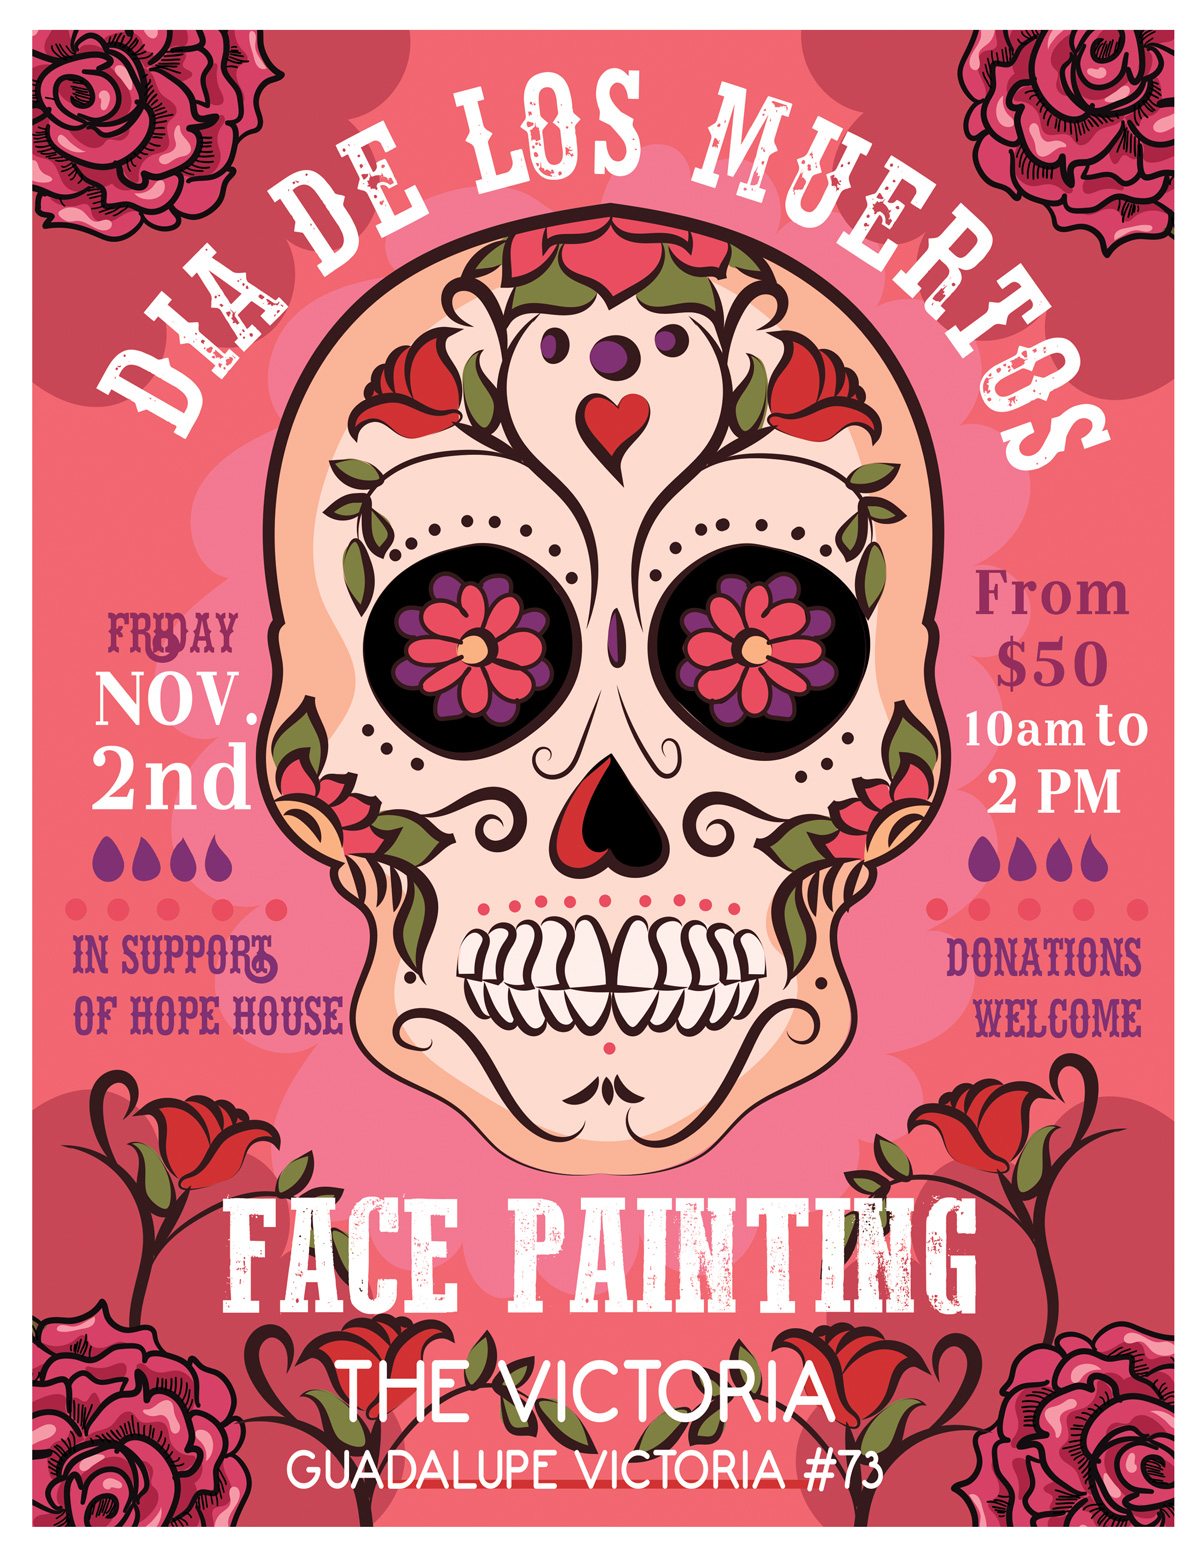 Dia De Los Muertos – A Fundraiser for Hope House